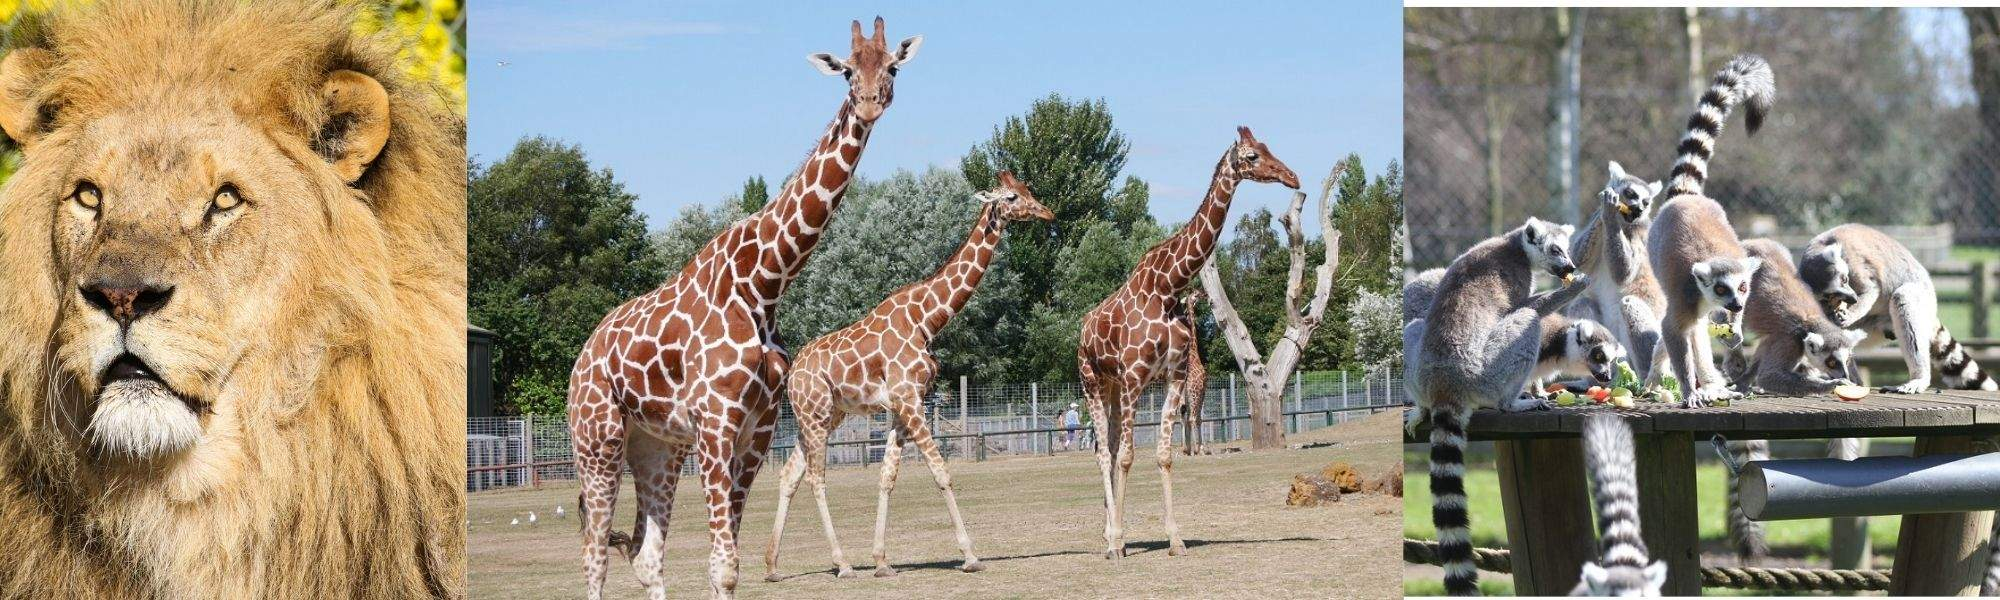 Sport, Leisure & Hobbies FAMILY PASS MEMBERS ONLY: Africa Alive Entry Tickets, 20% off